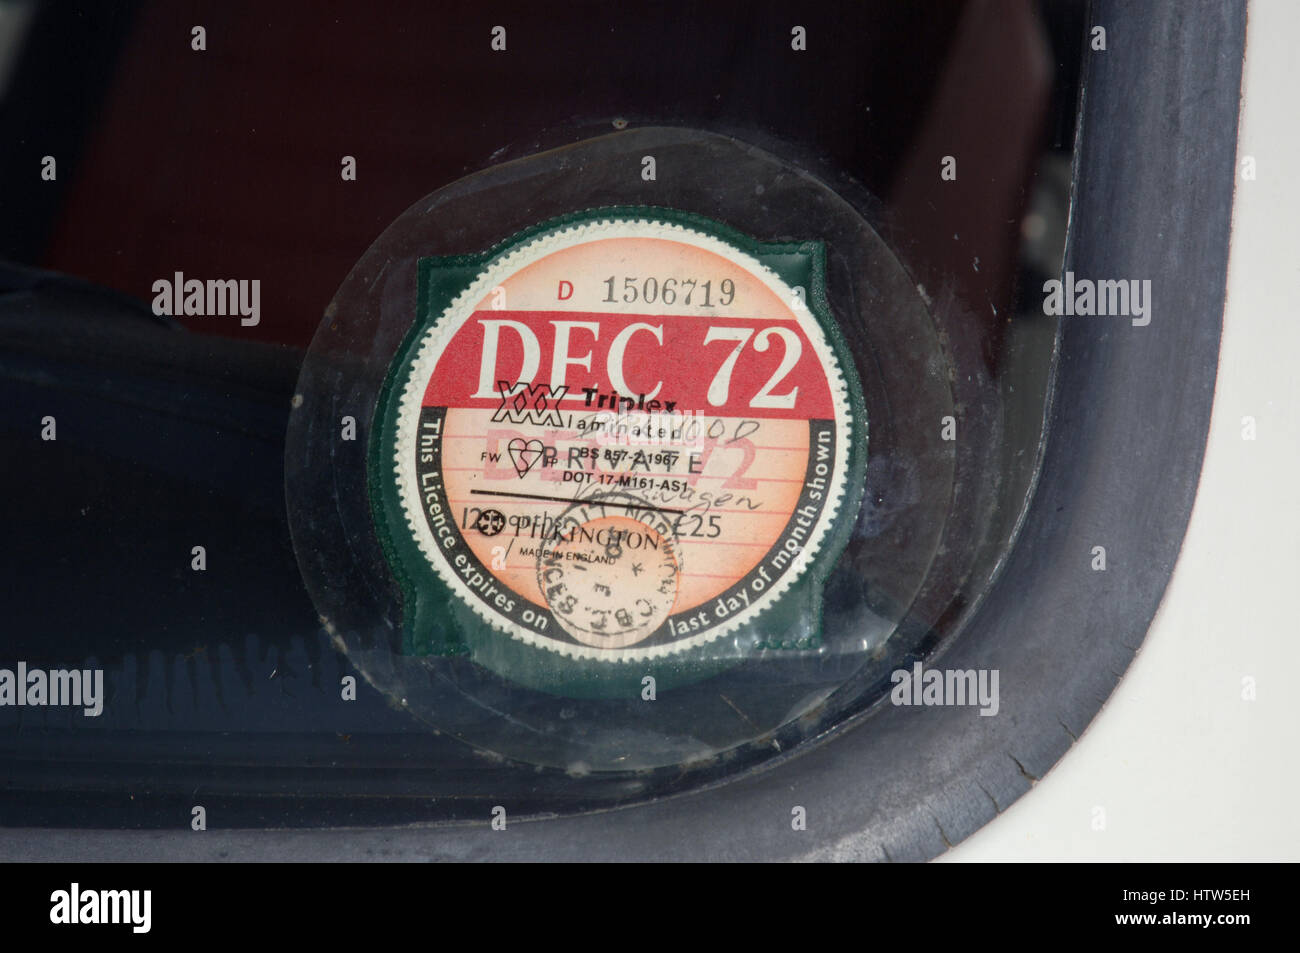 Vintage UK car road tax disk, dated December 1972 Stock Photo ...